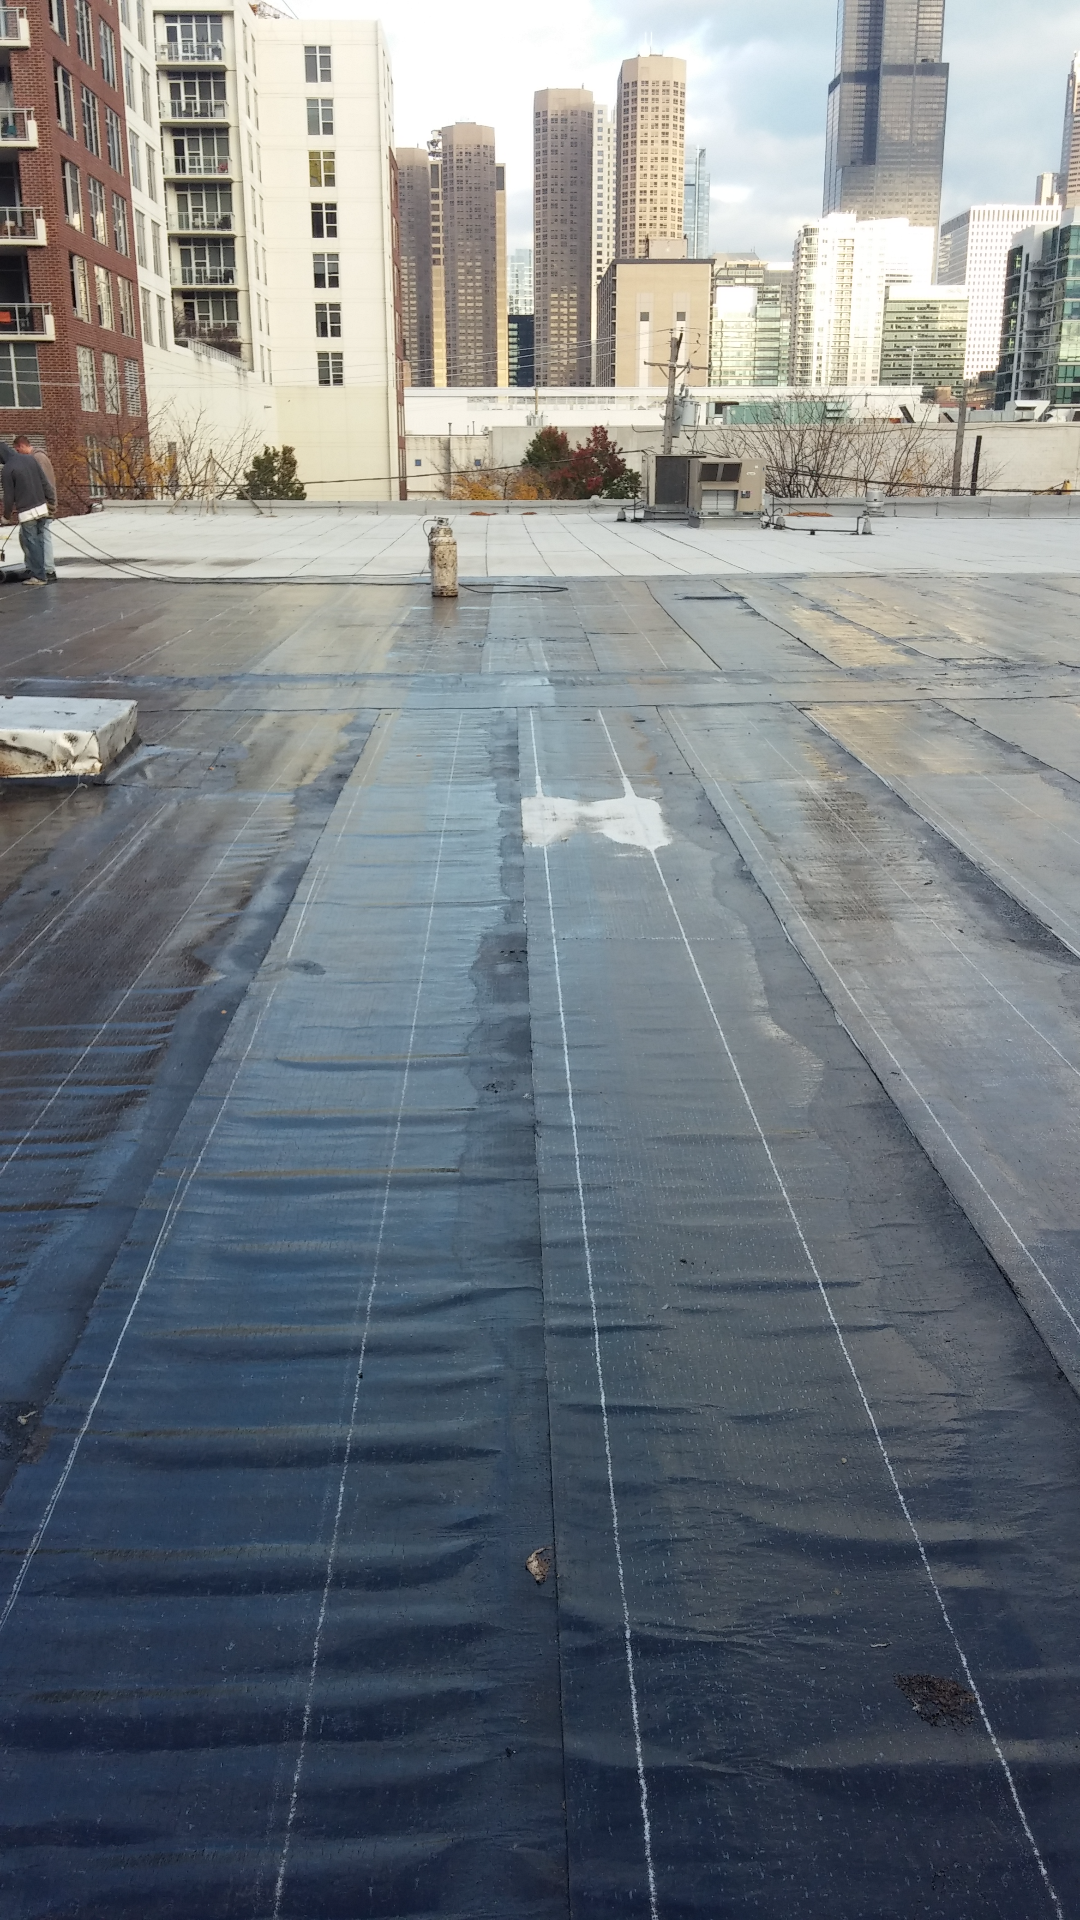 finished work on flat roof